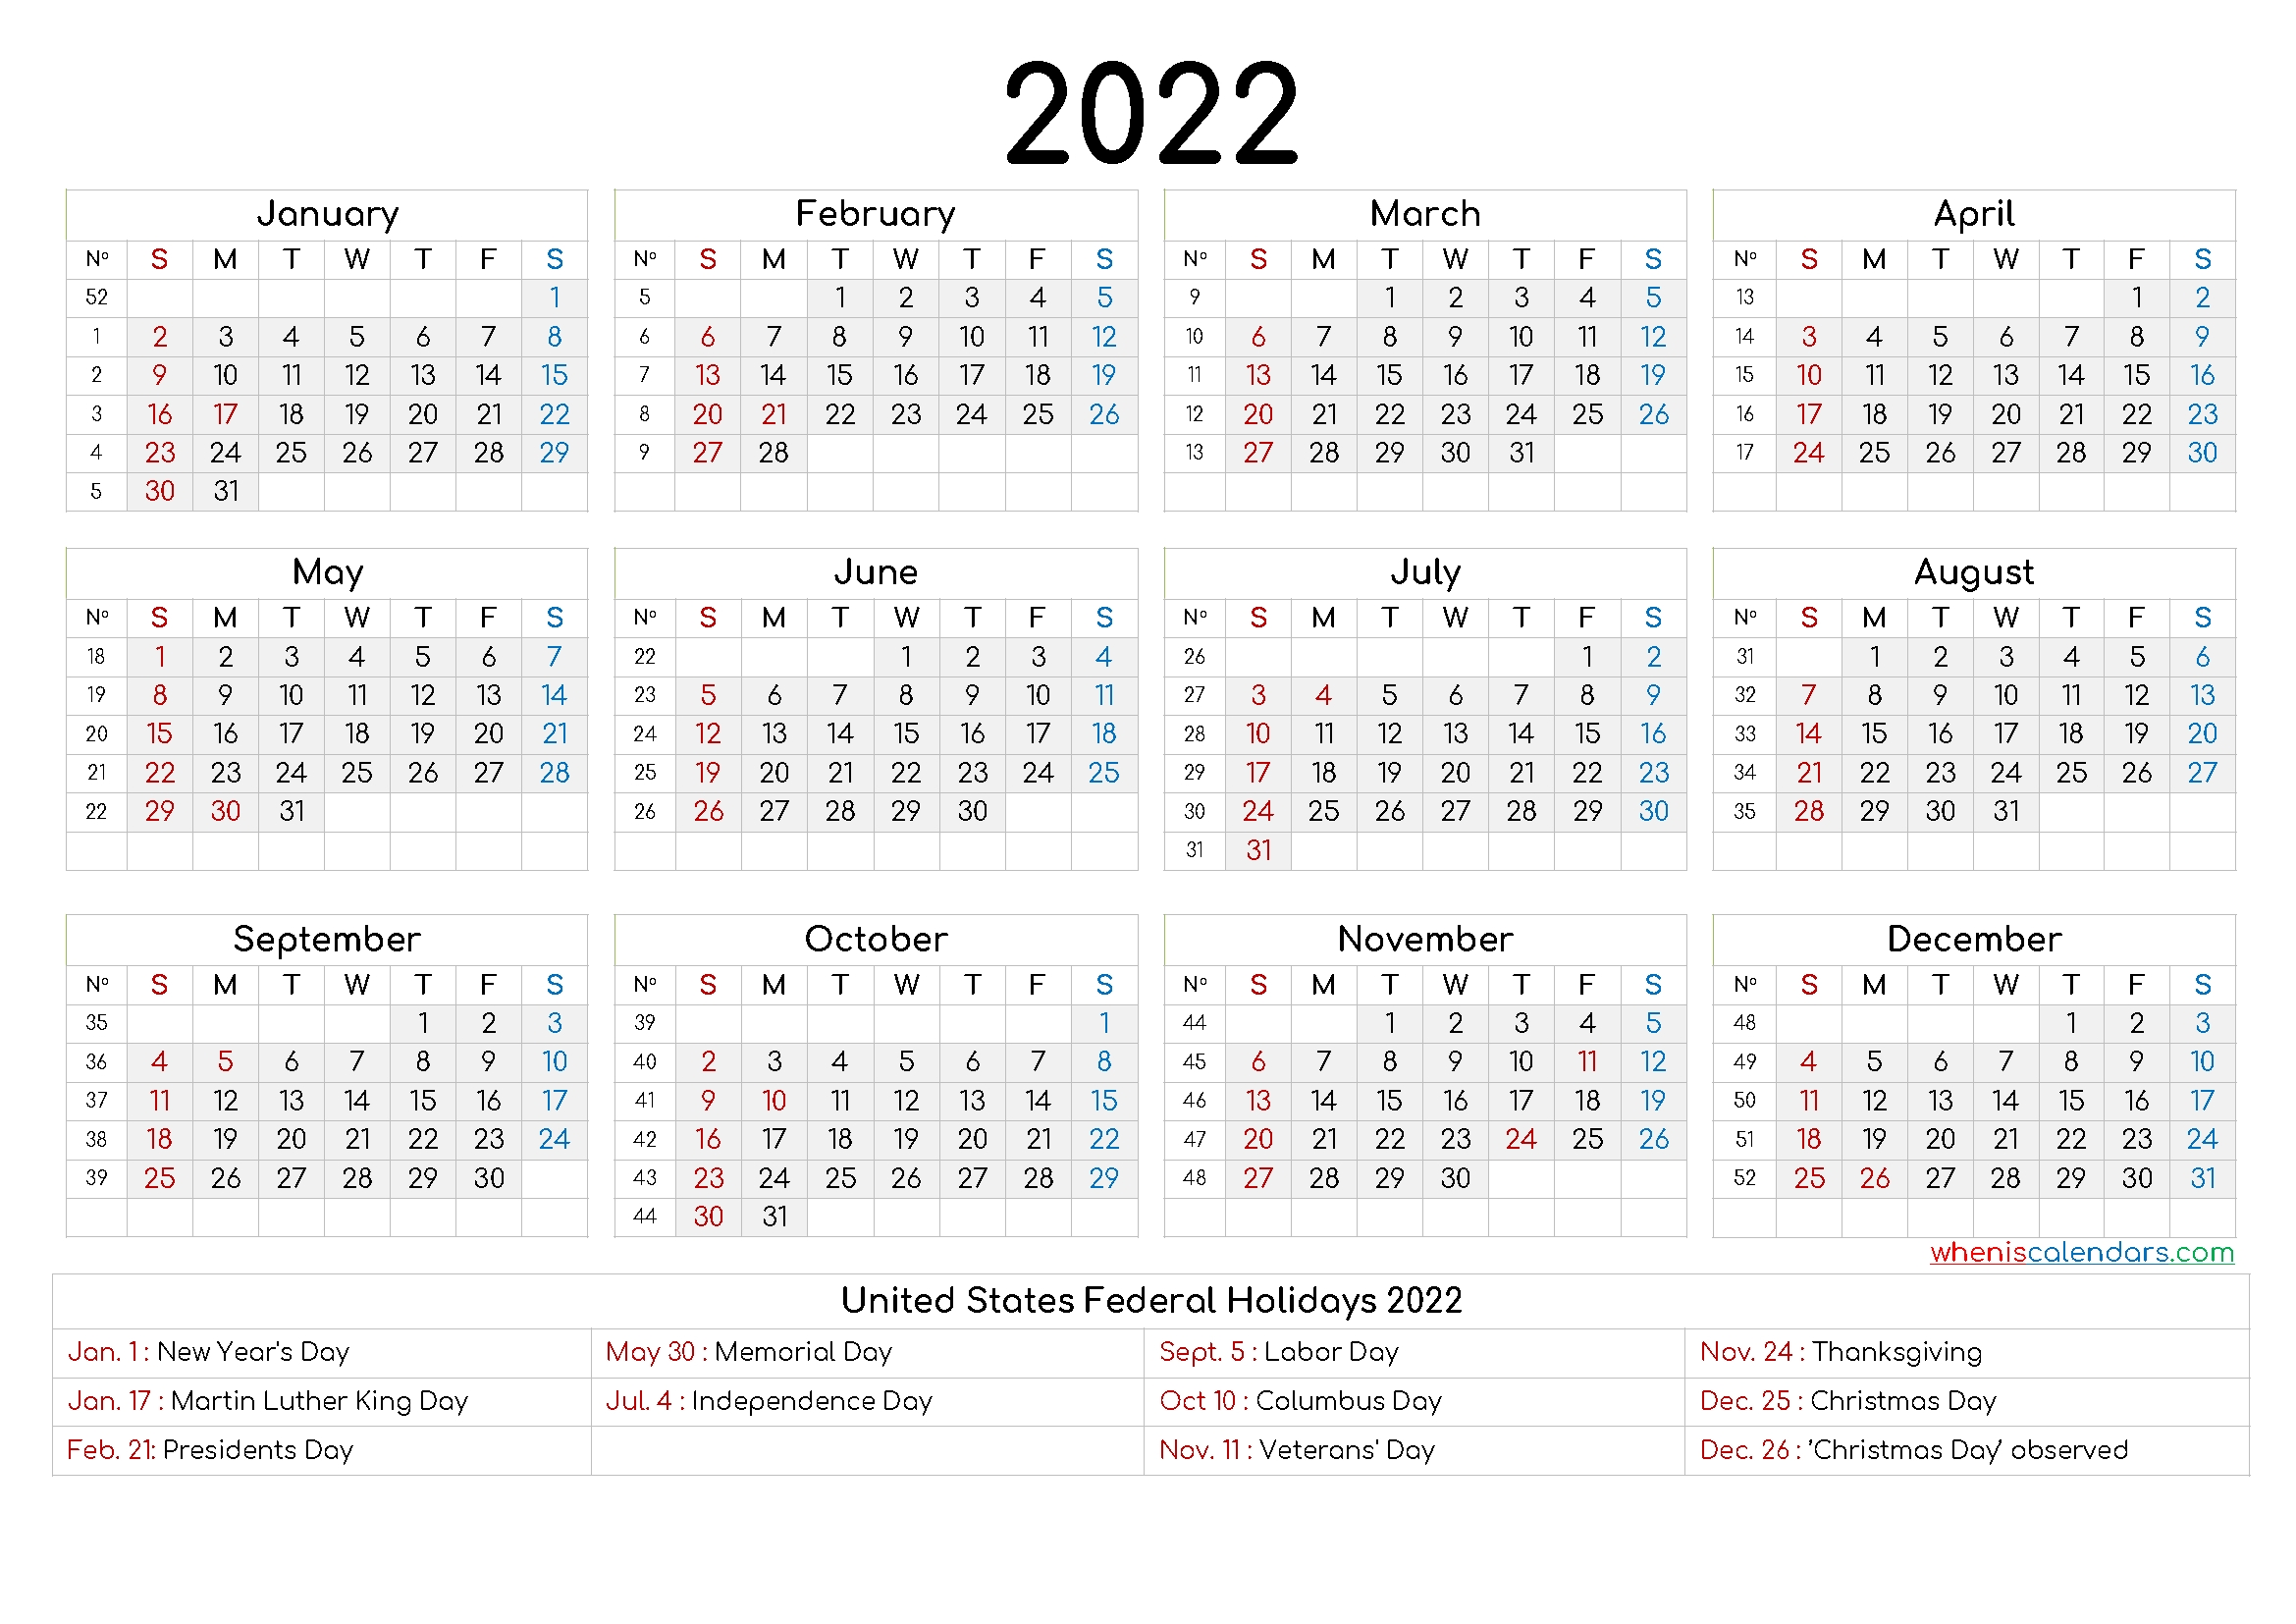 2022 Yearly Calendar Template Word - 9 Templates - Free 2020 And 2021 Calendar Printable Monthly for 2021 2022 Calendar Printable One Page Photo